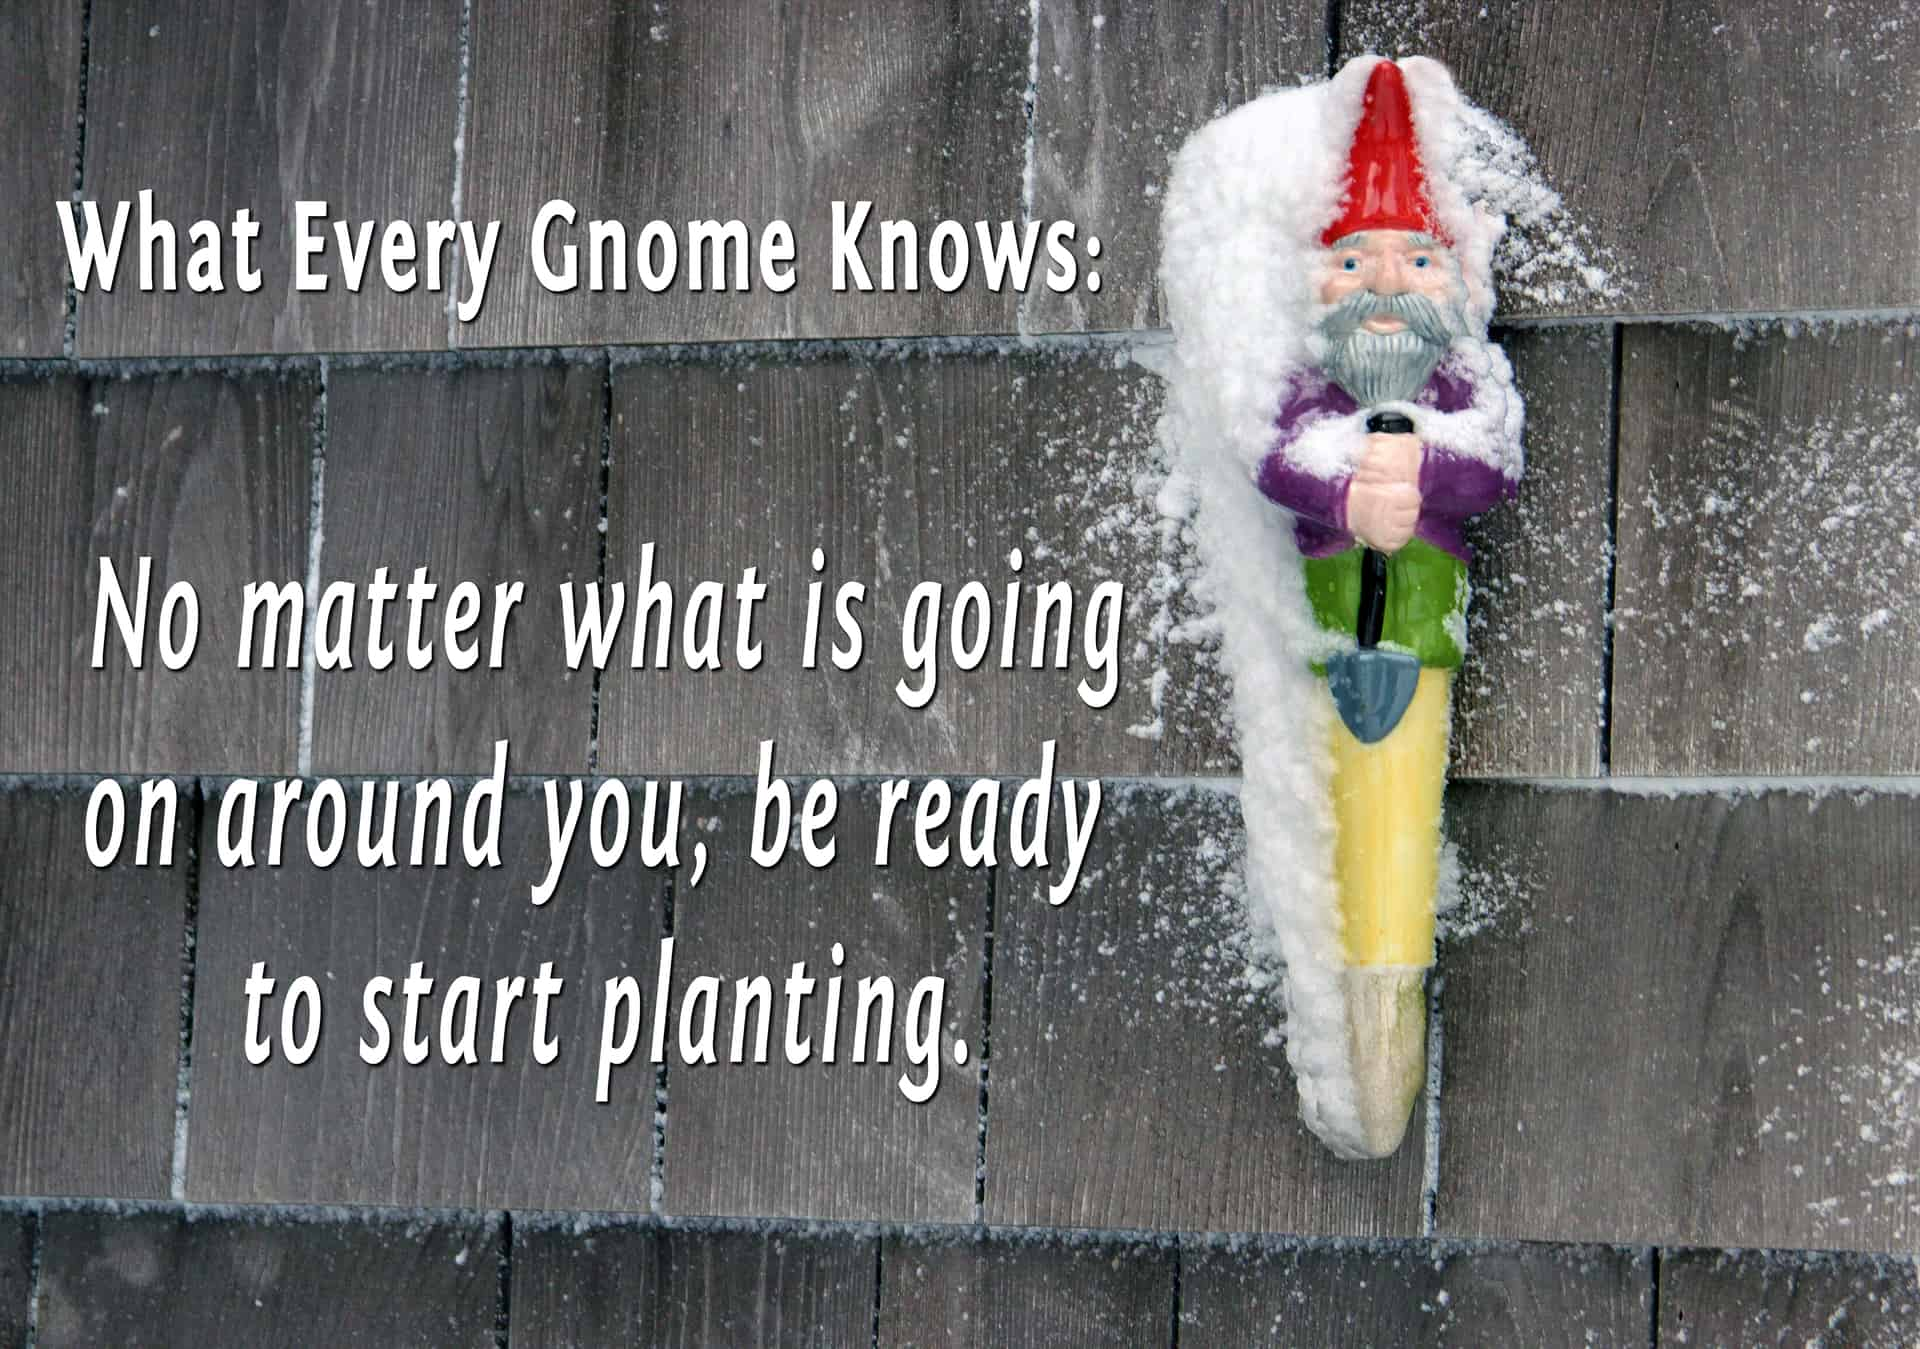 What Every Gnome Knows